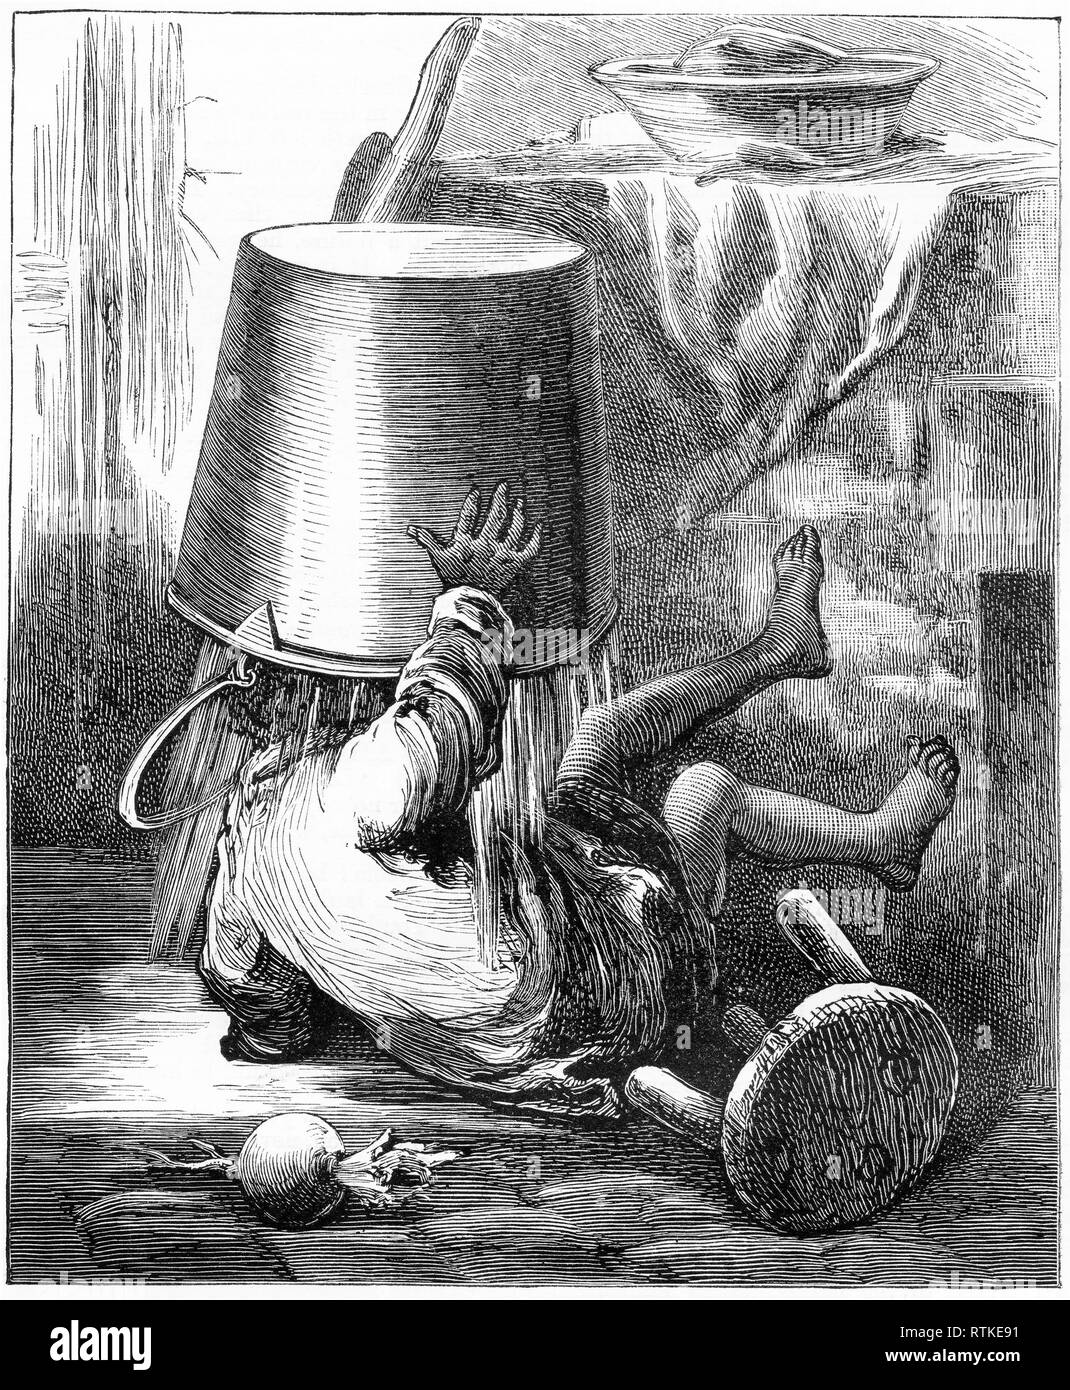 Engraving of a toddler falling on the floor, with a bucket of water upended on his head. From Chatterbox magazine, 1905 - Stock Image